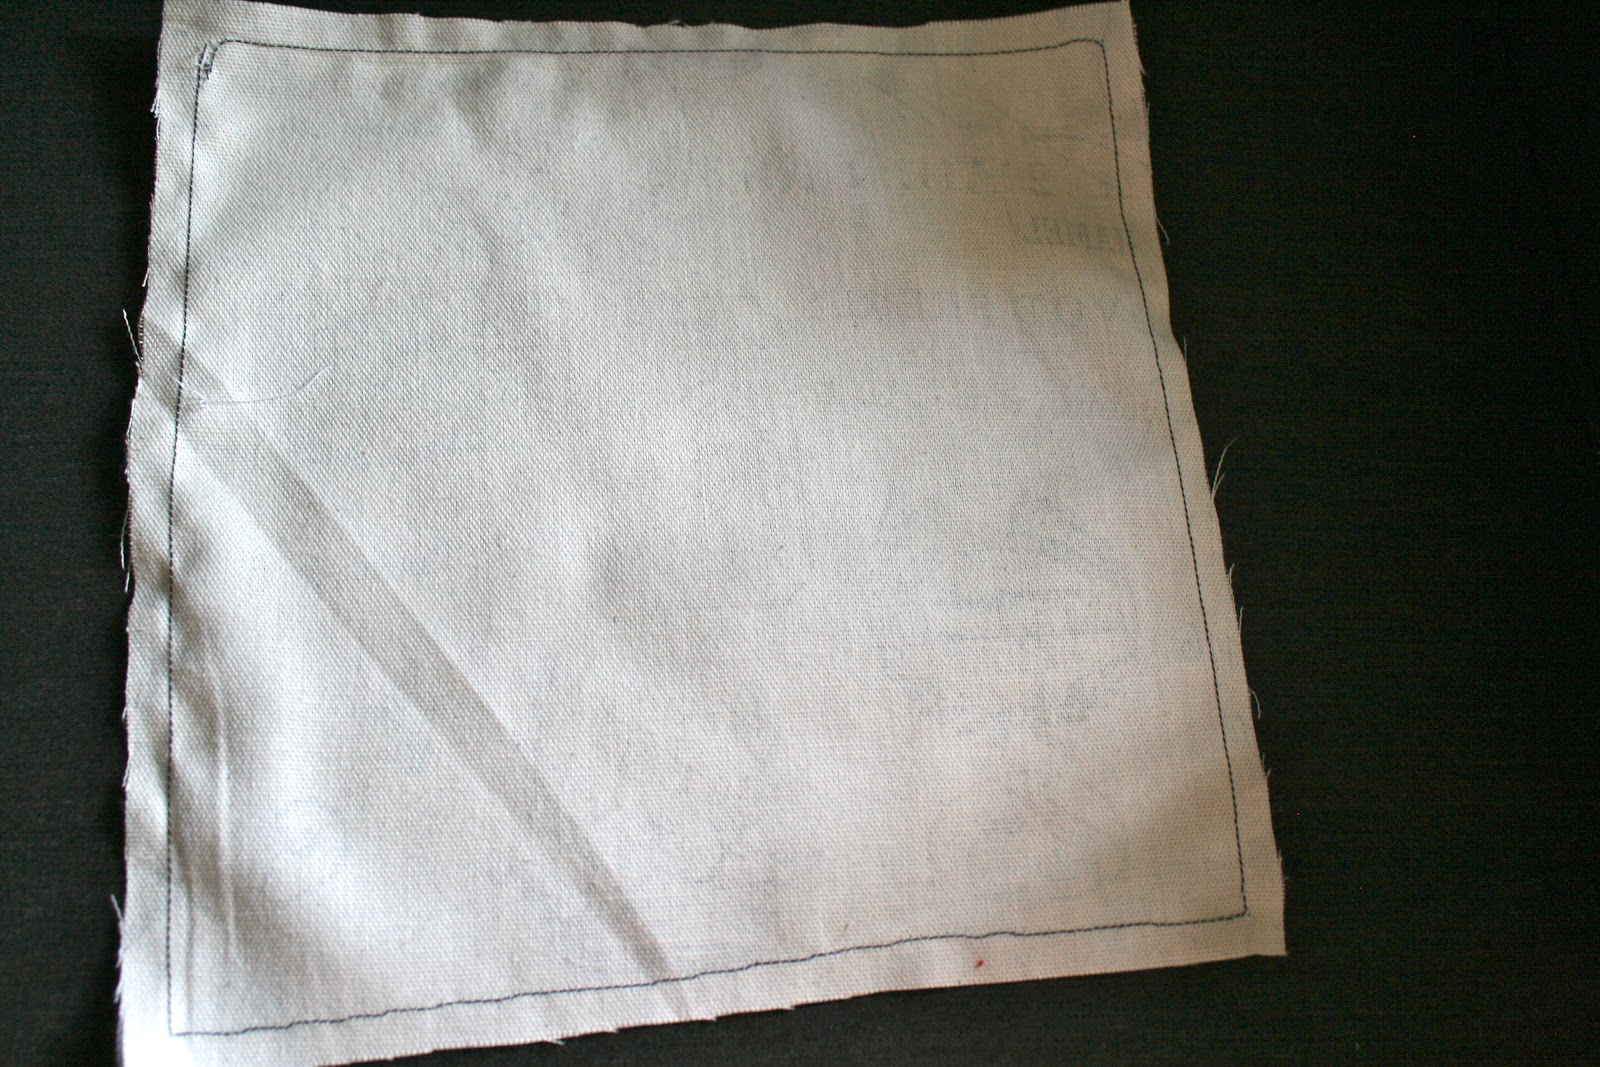 how to cut circular holes in fabric